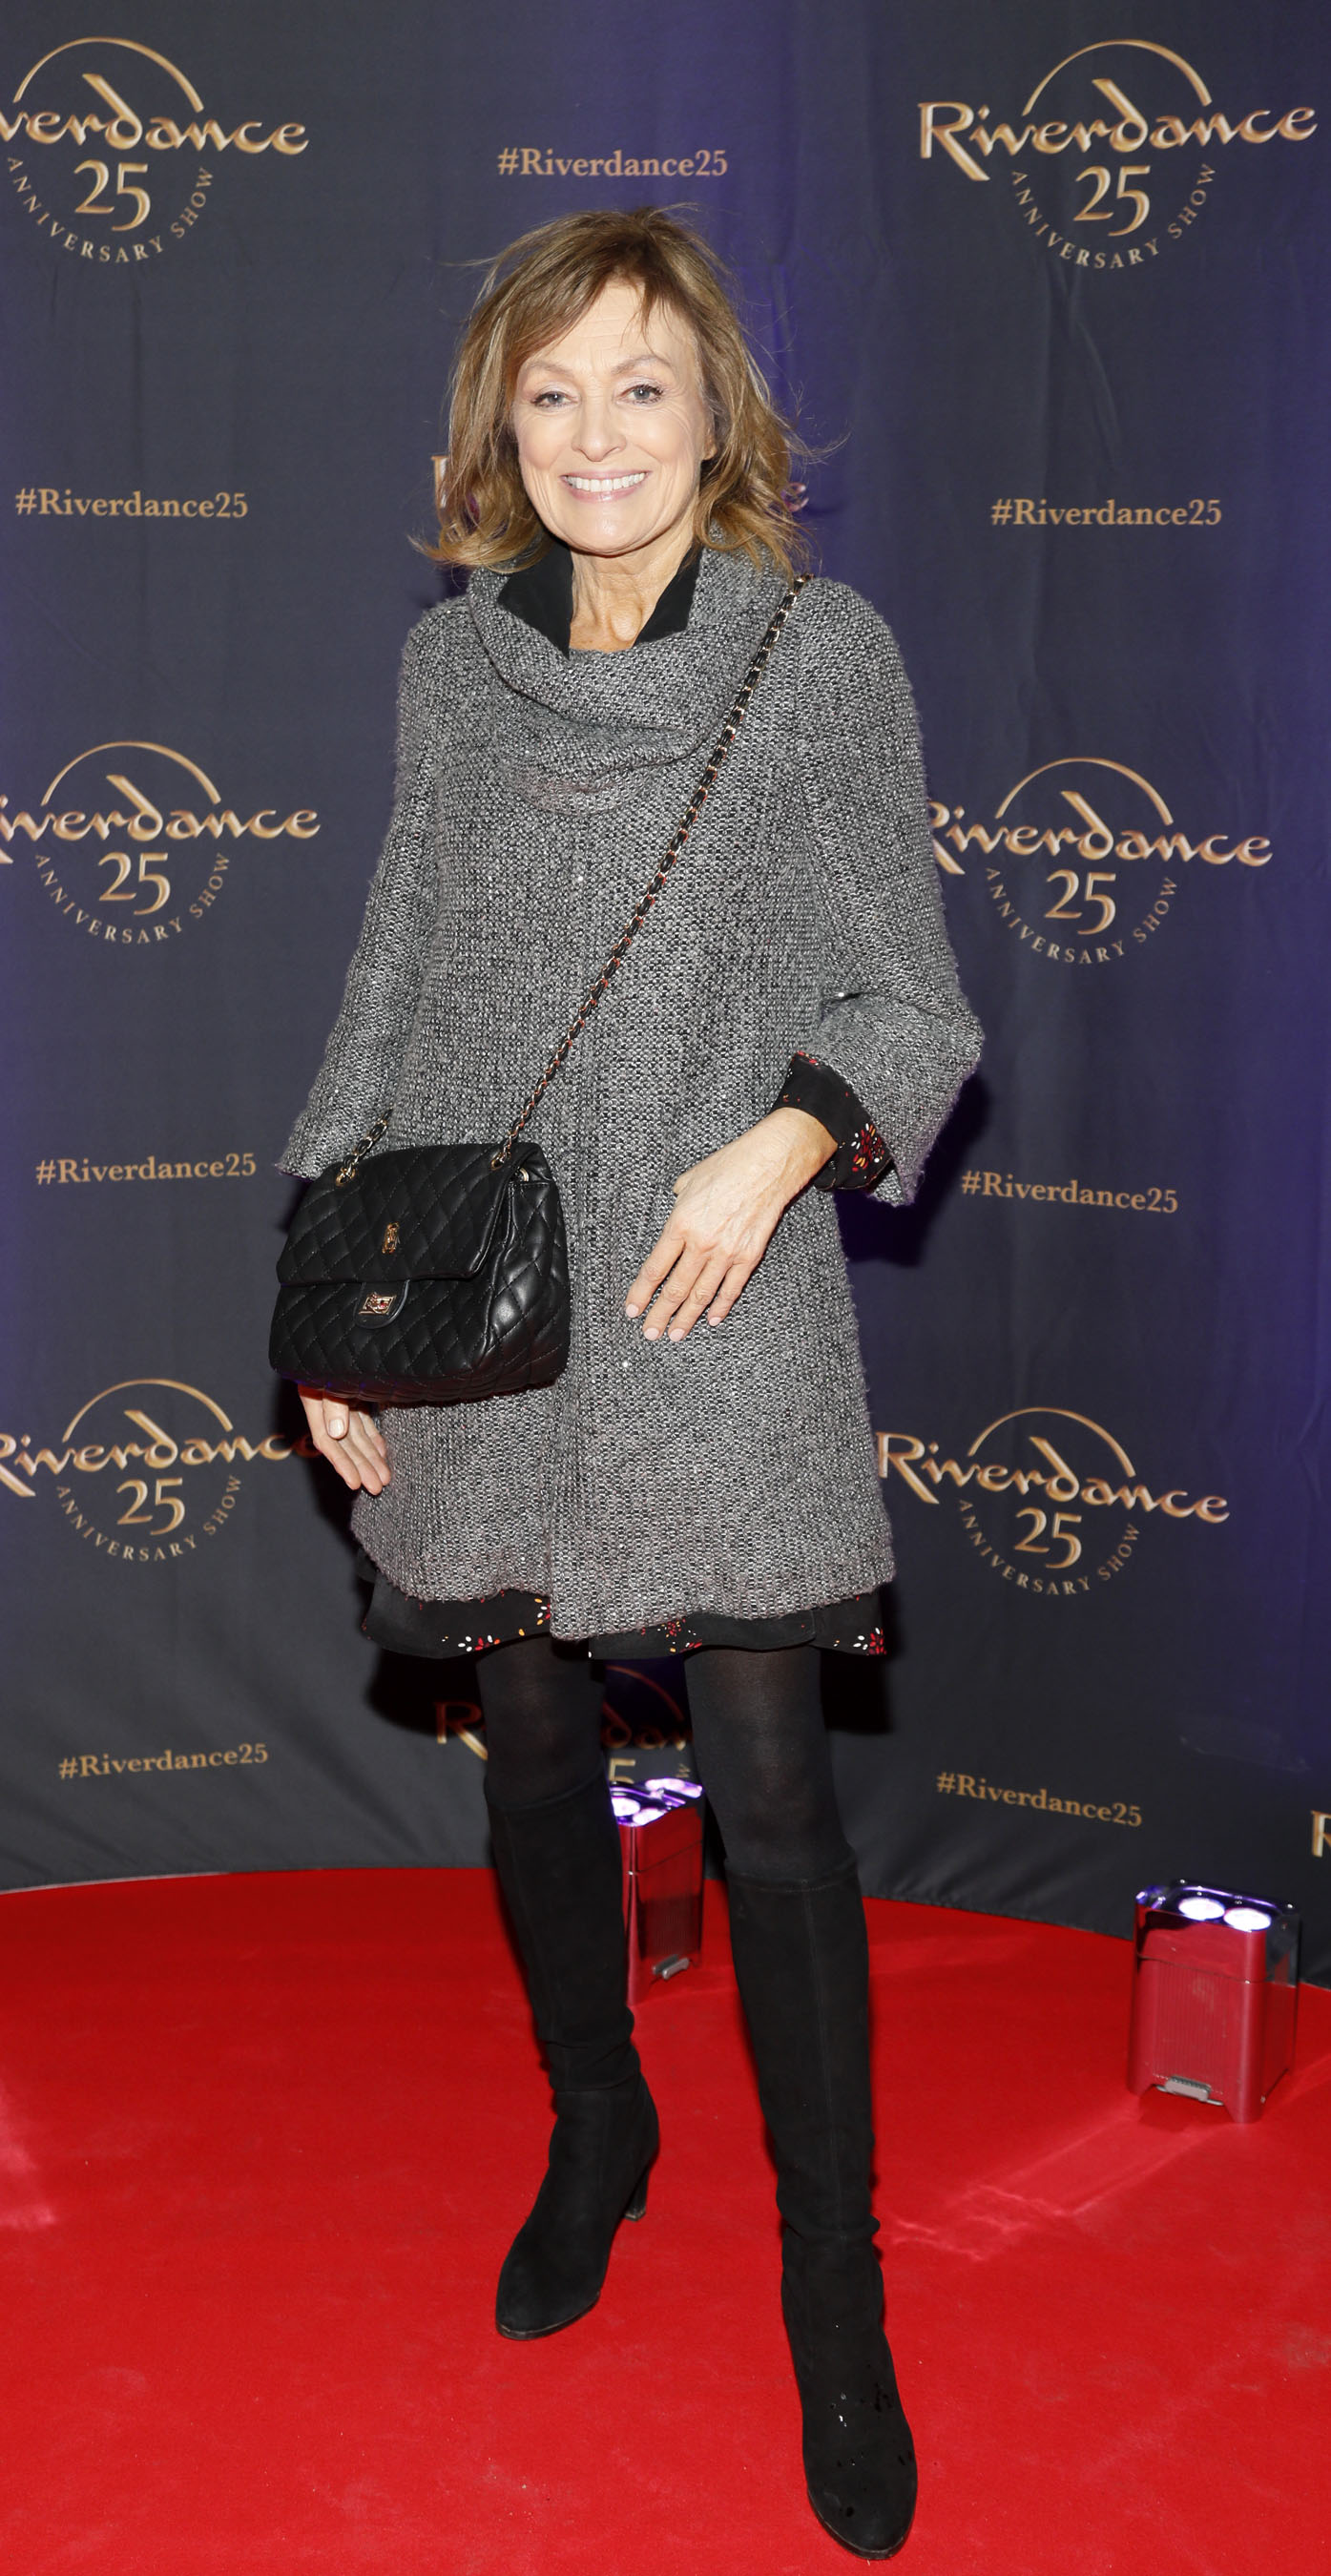 Mary Kennedy at the historic gala performance of Riverdance 25th Anniversary show at 3Arena Dublin exactly 25 years to the day that Riverdance was first performed at the Point Depot.  Photo: Kieran Harnett